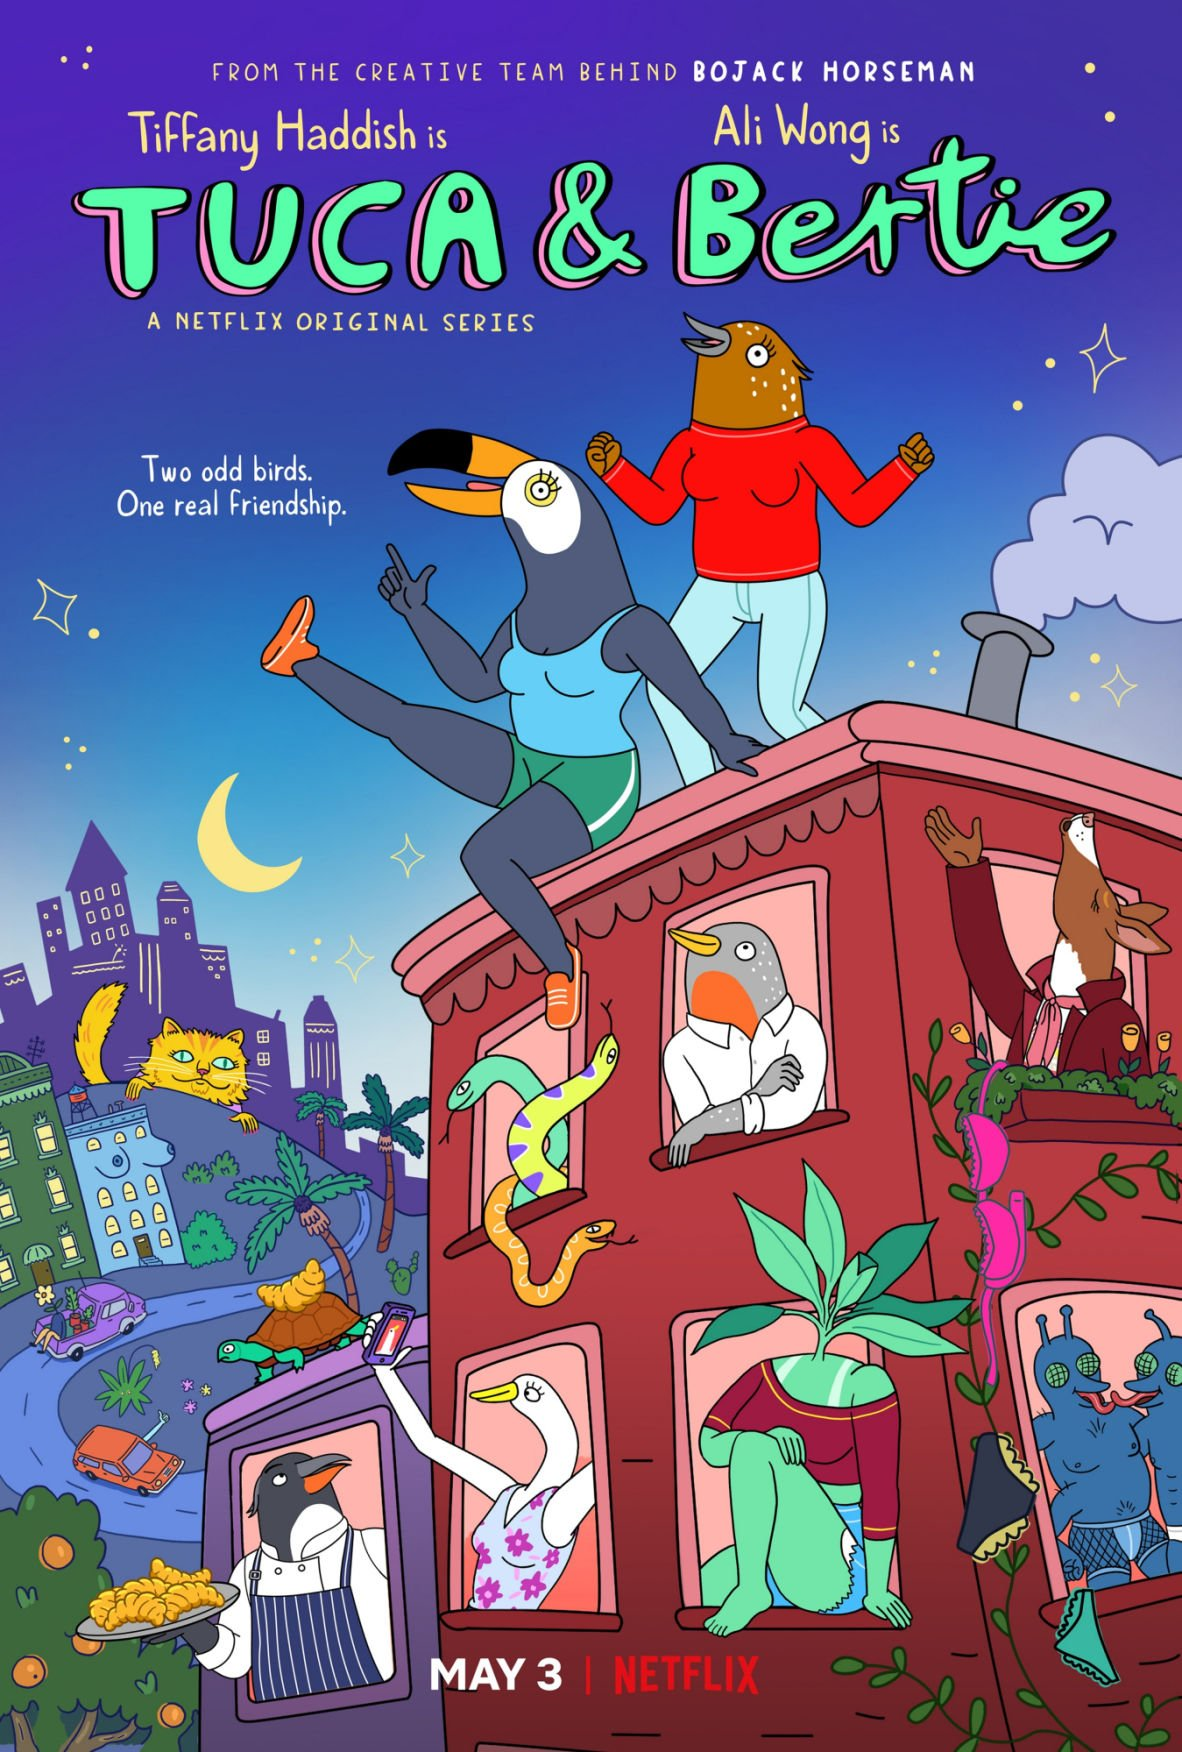 'Tuca & Bertie' will take flight again on Adult Swim